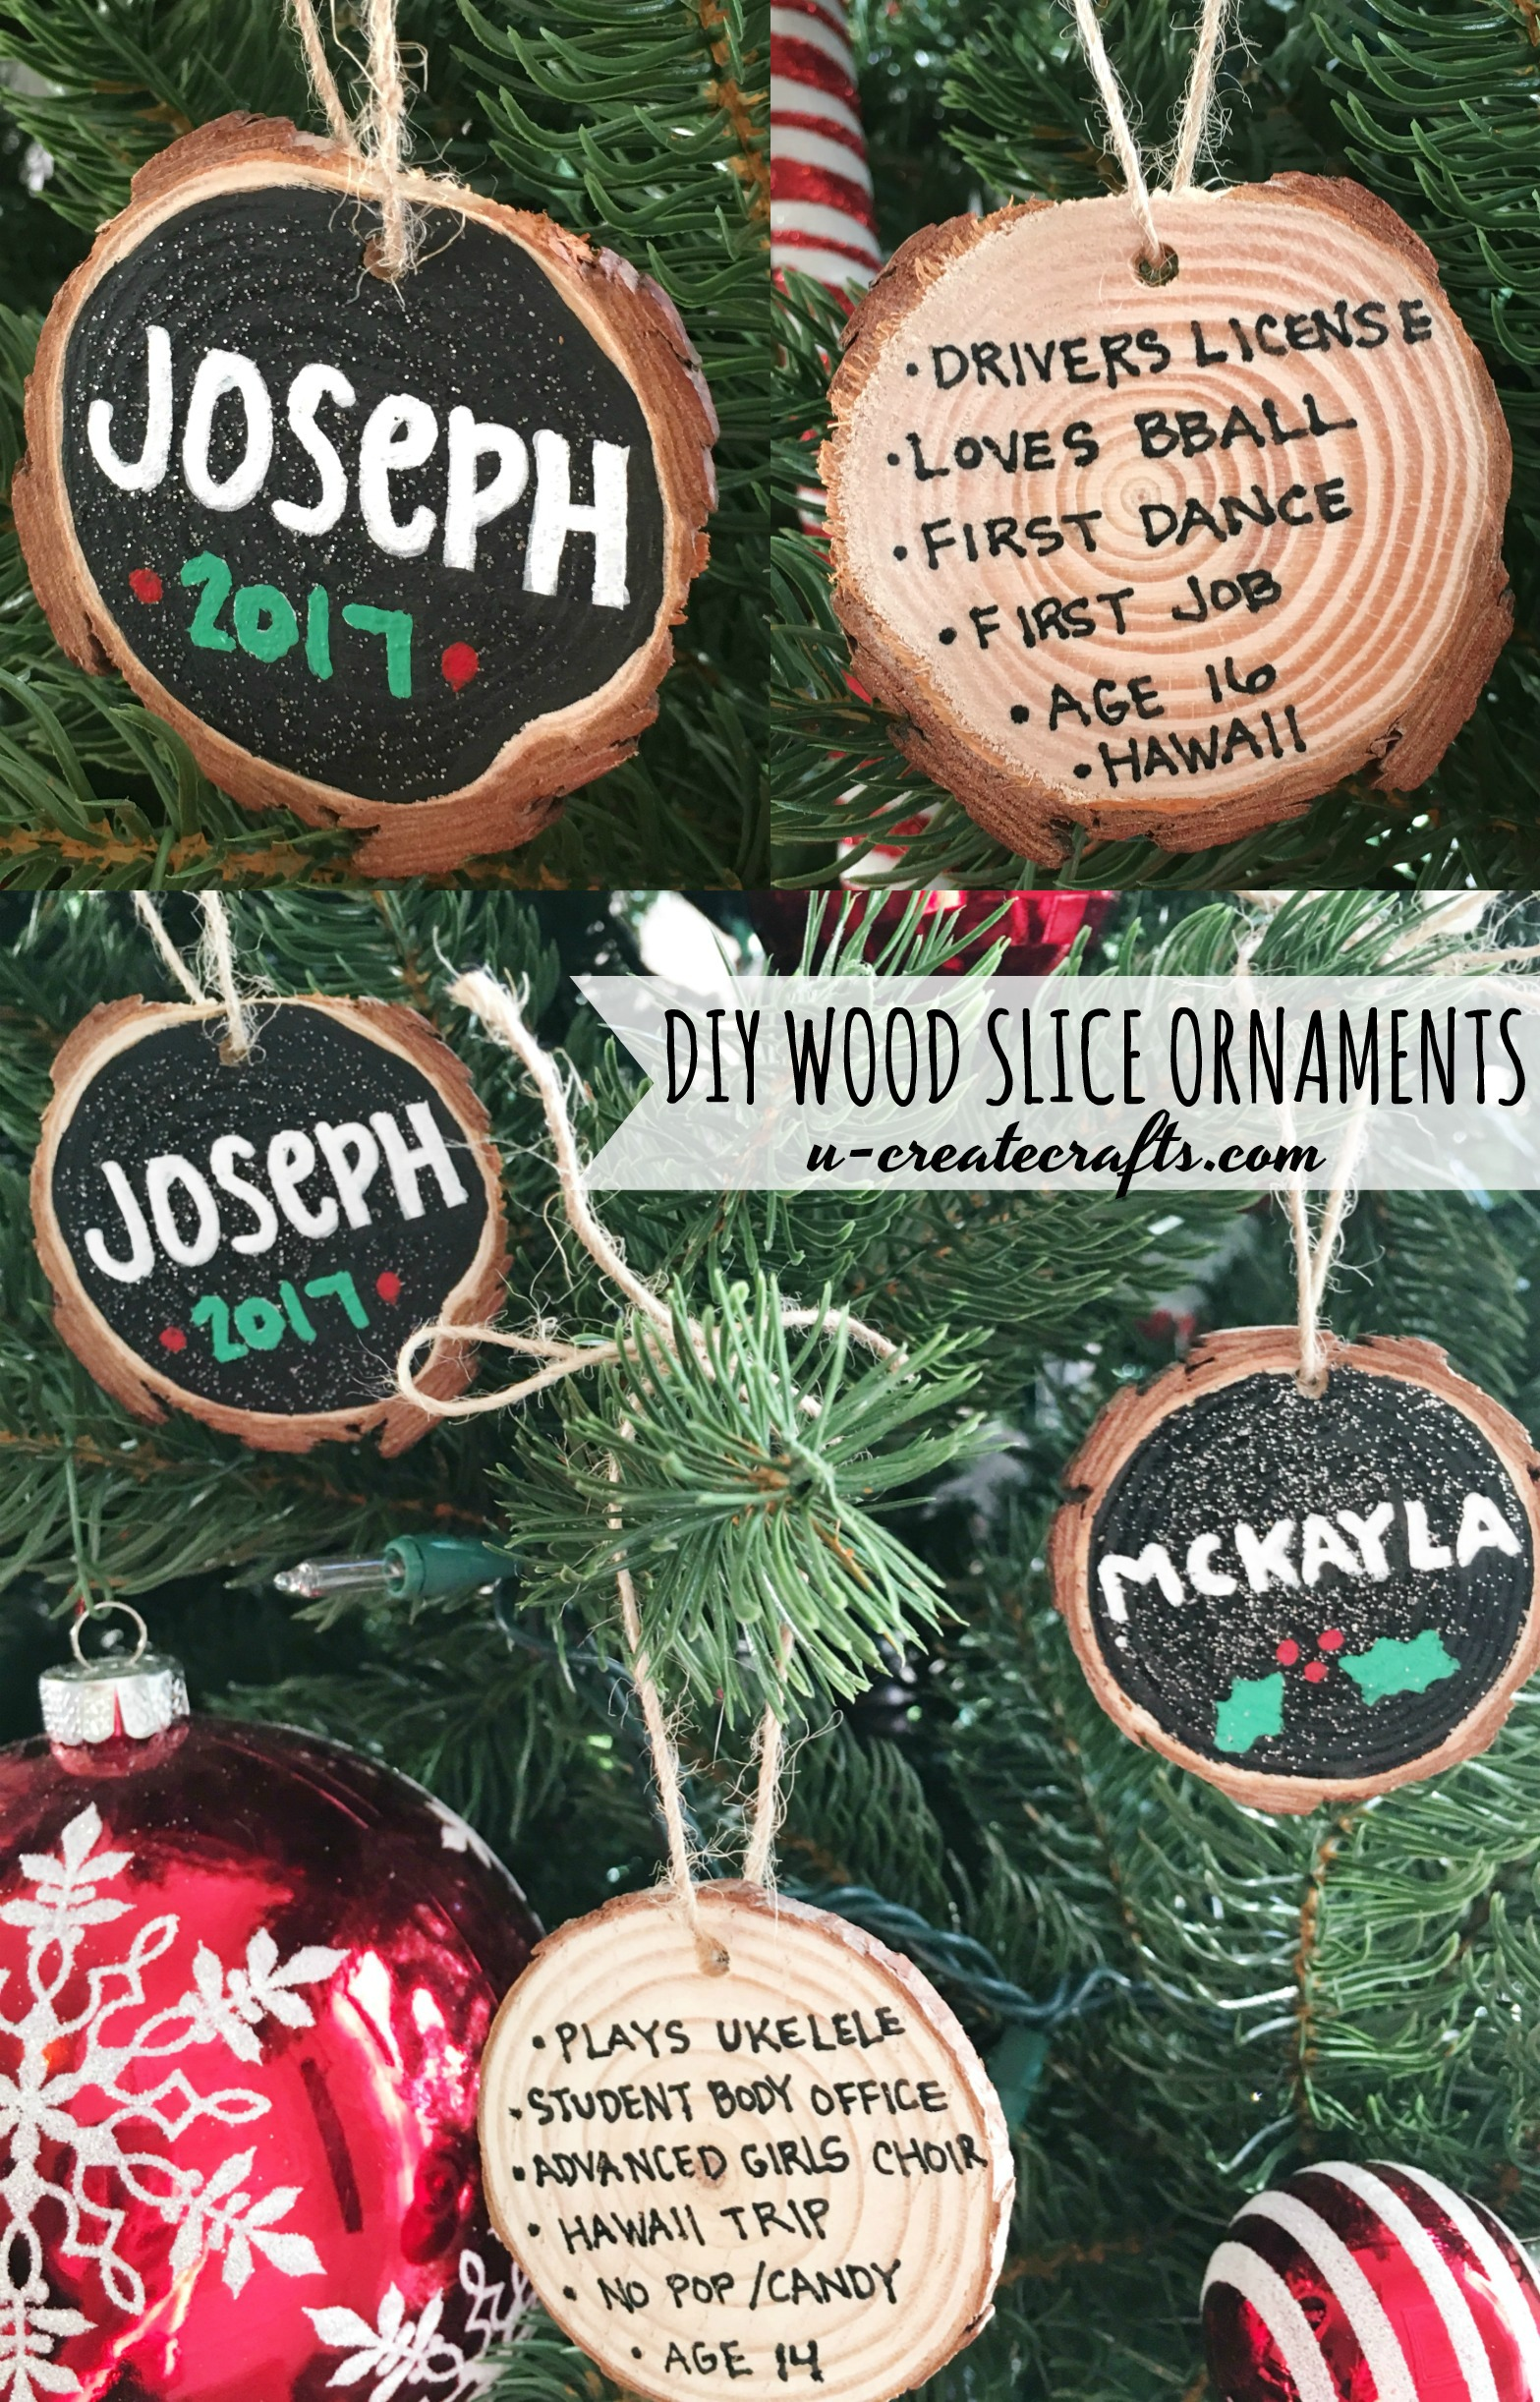 DIY Wood Slice Ornaments - personalize on back with memories!